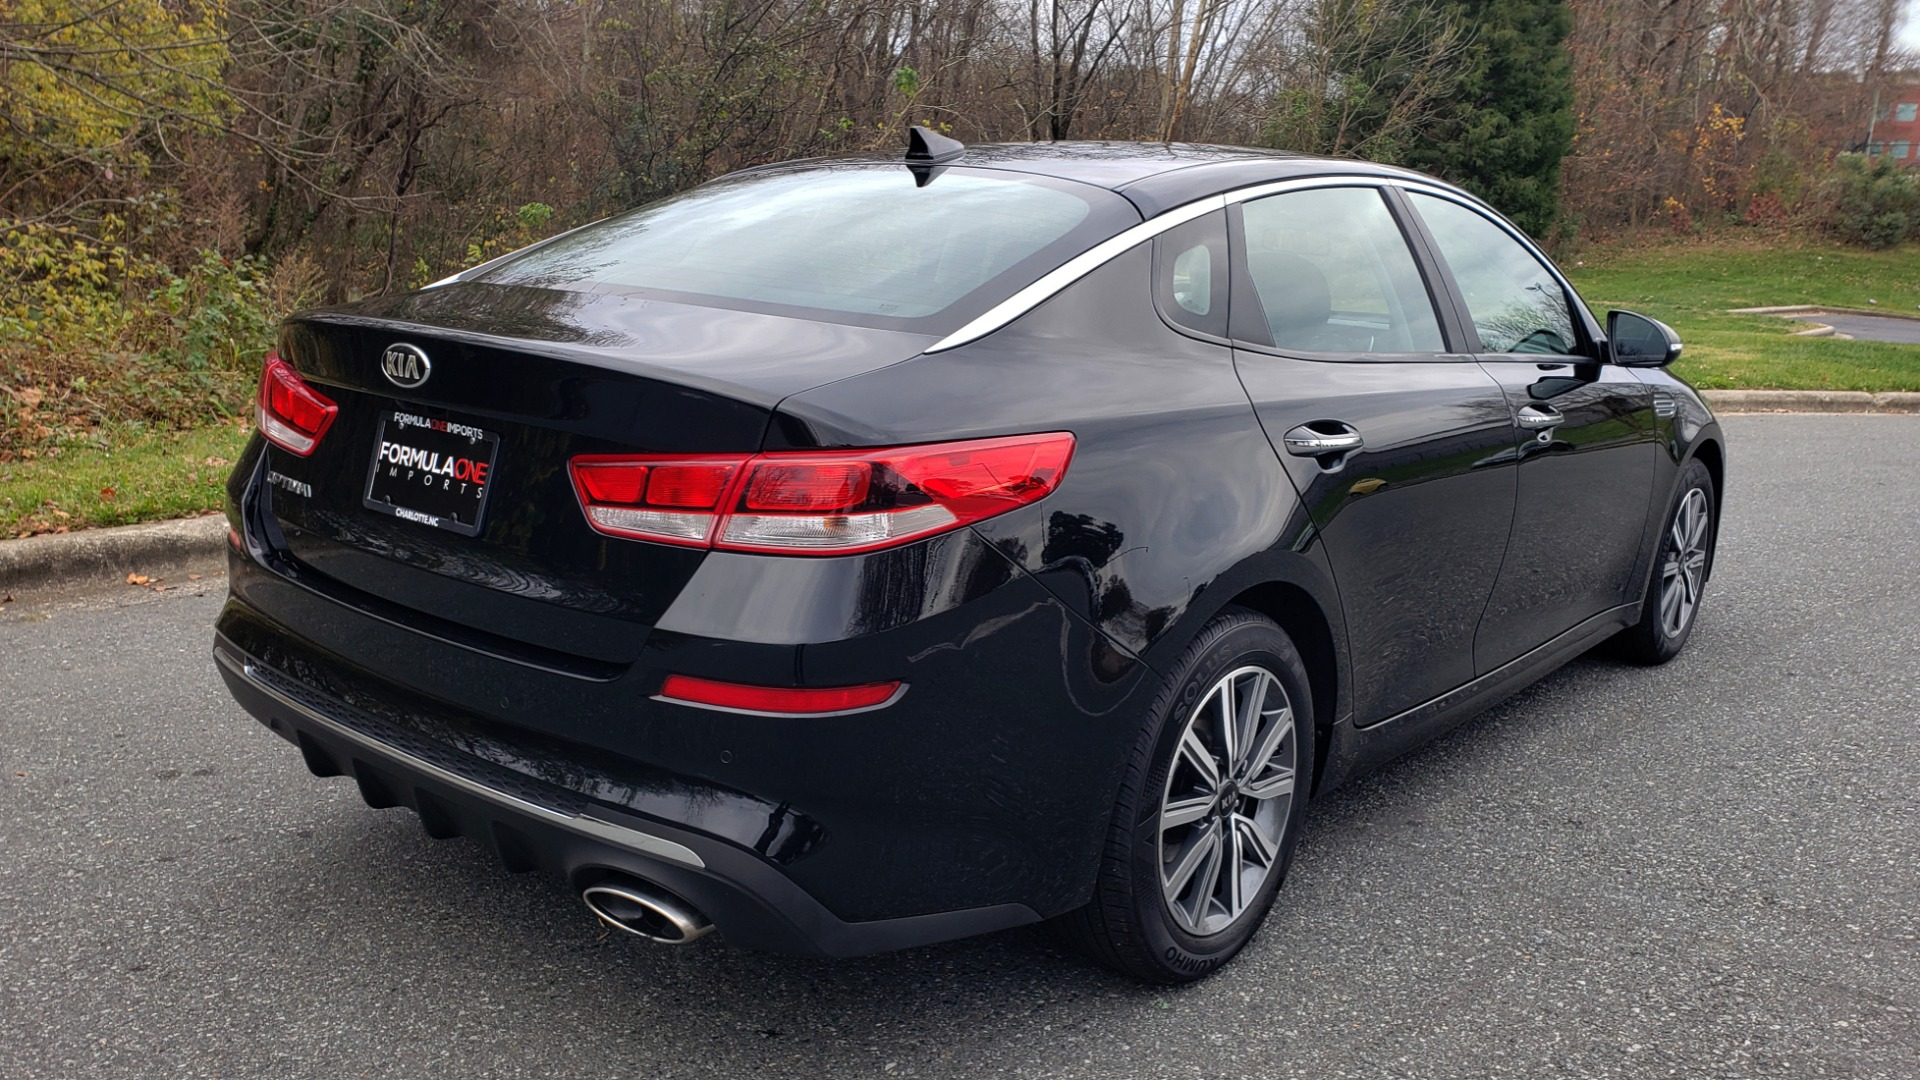 Used 2019 Kia OPTIMA LX AUTO / 2.4L 4-CYL / 6-SPD AUTO / REARVIEW / LOW MILES for sale $17,995 at Formula Imports in Charlotte NC 28227 6